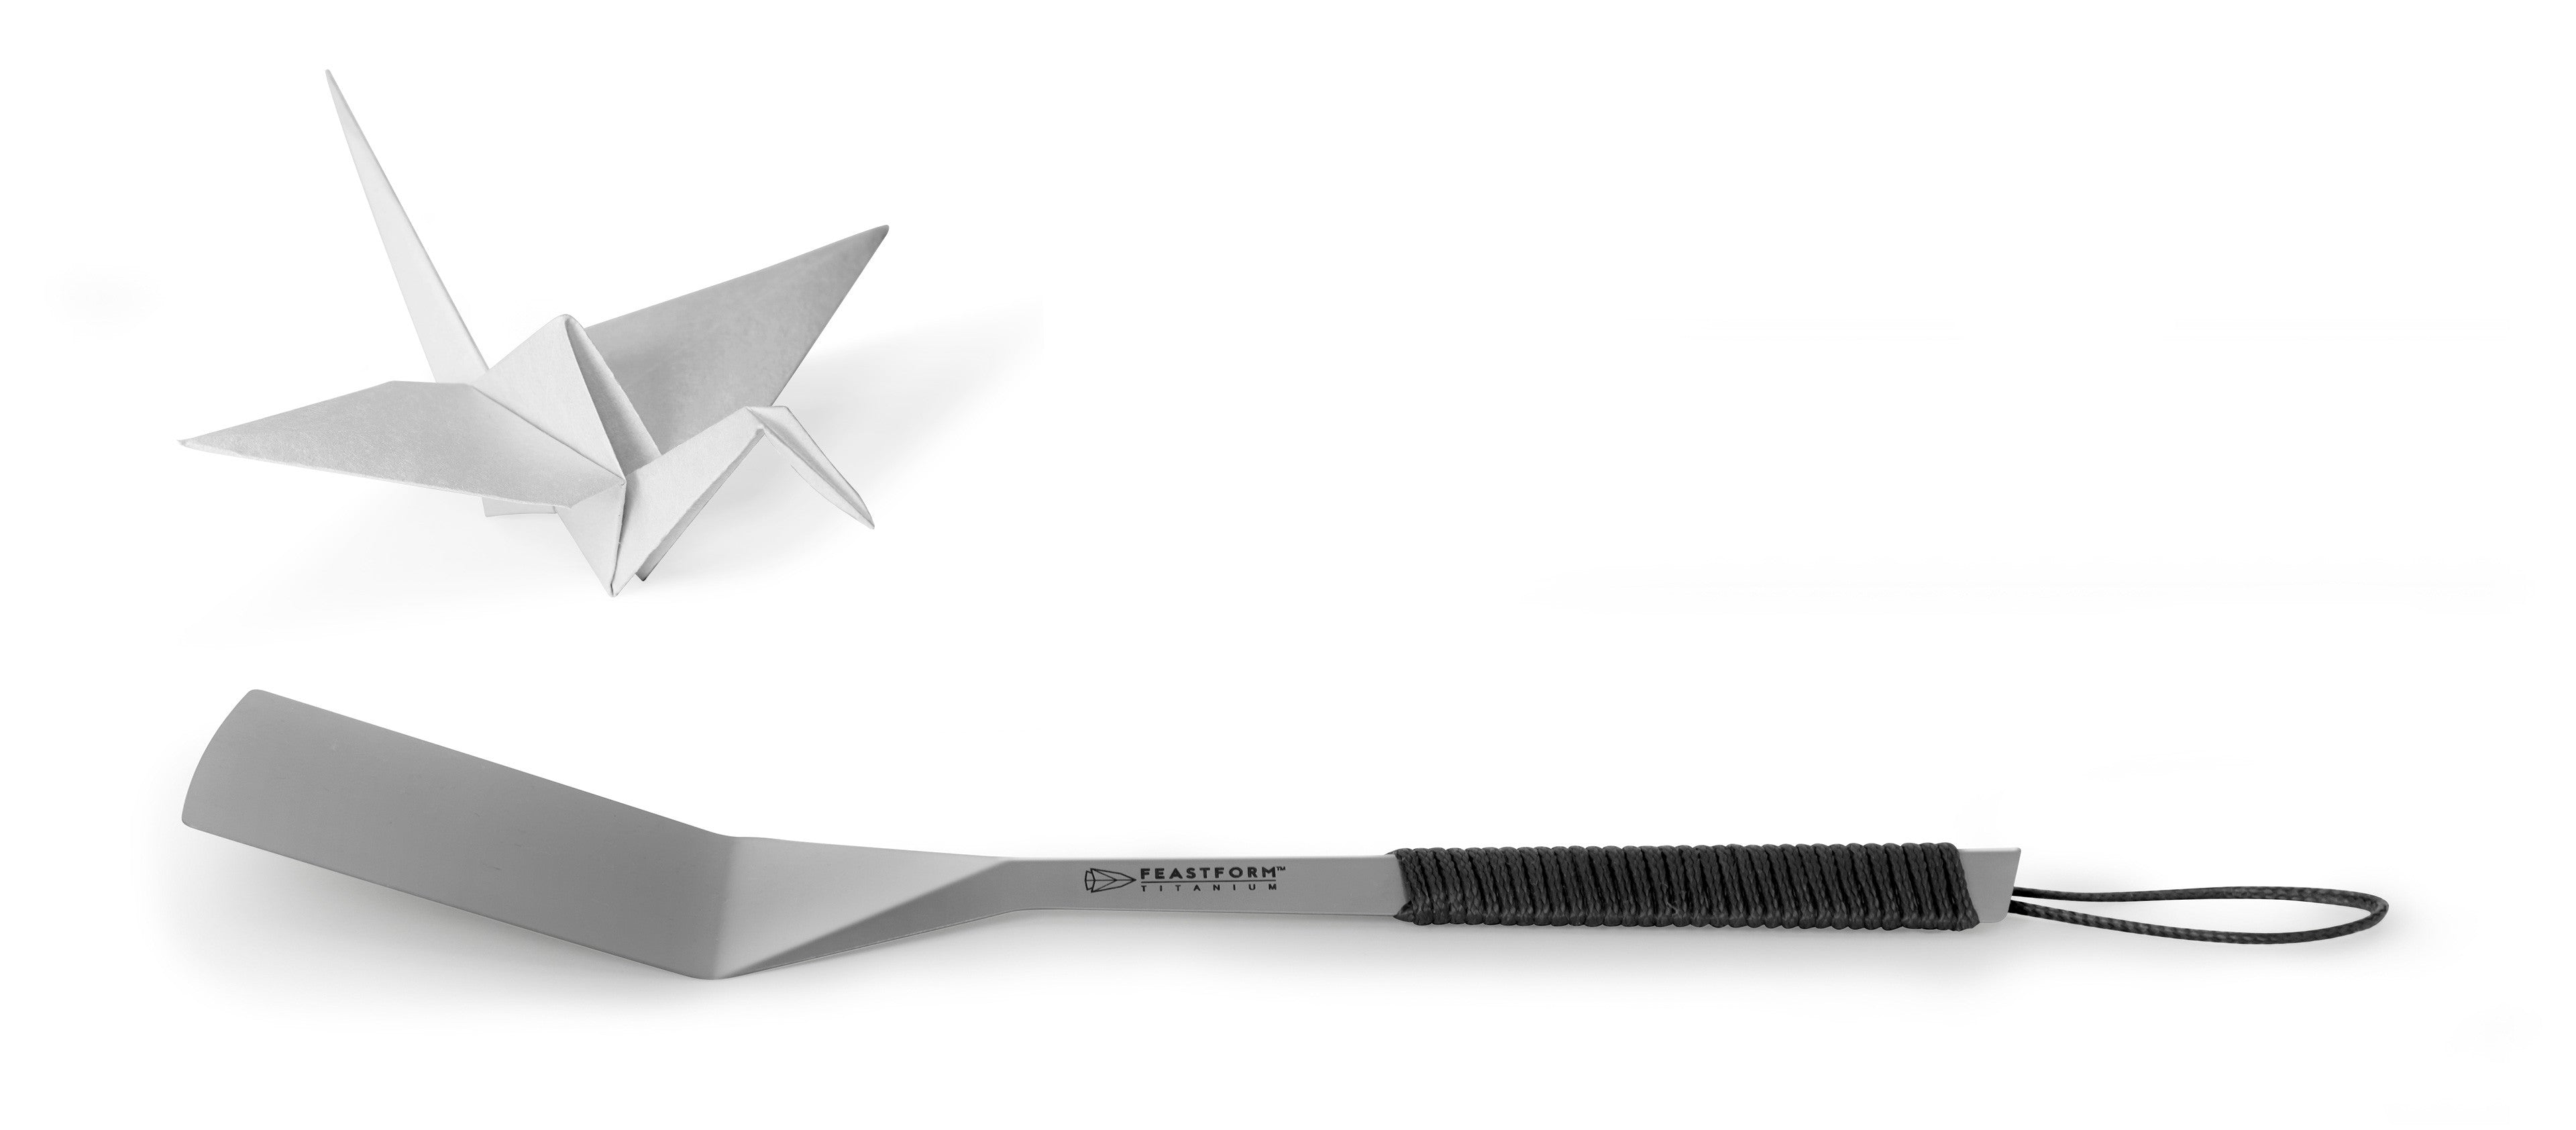 Feastform titanium camping spatula and paper crane. Inspired by origami.